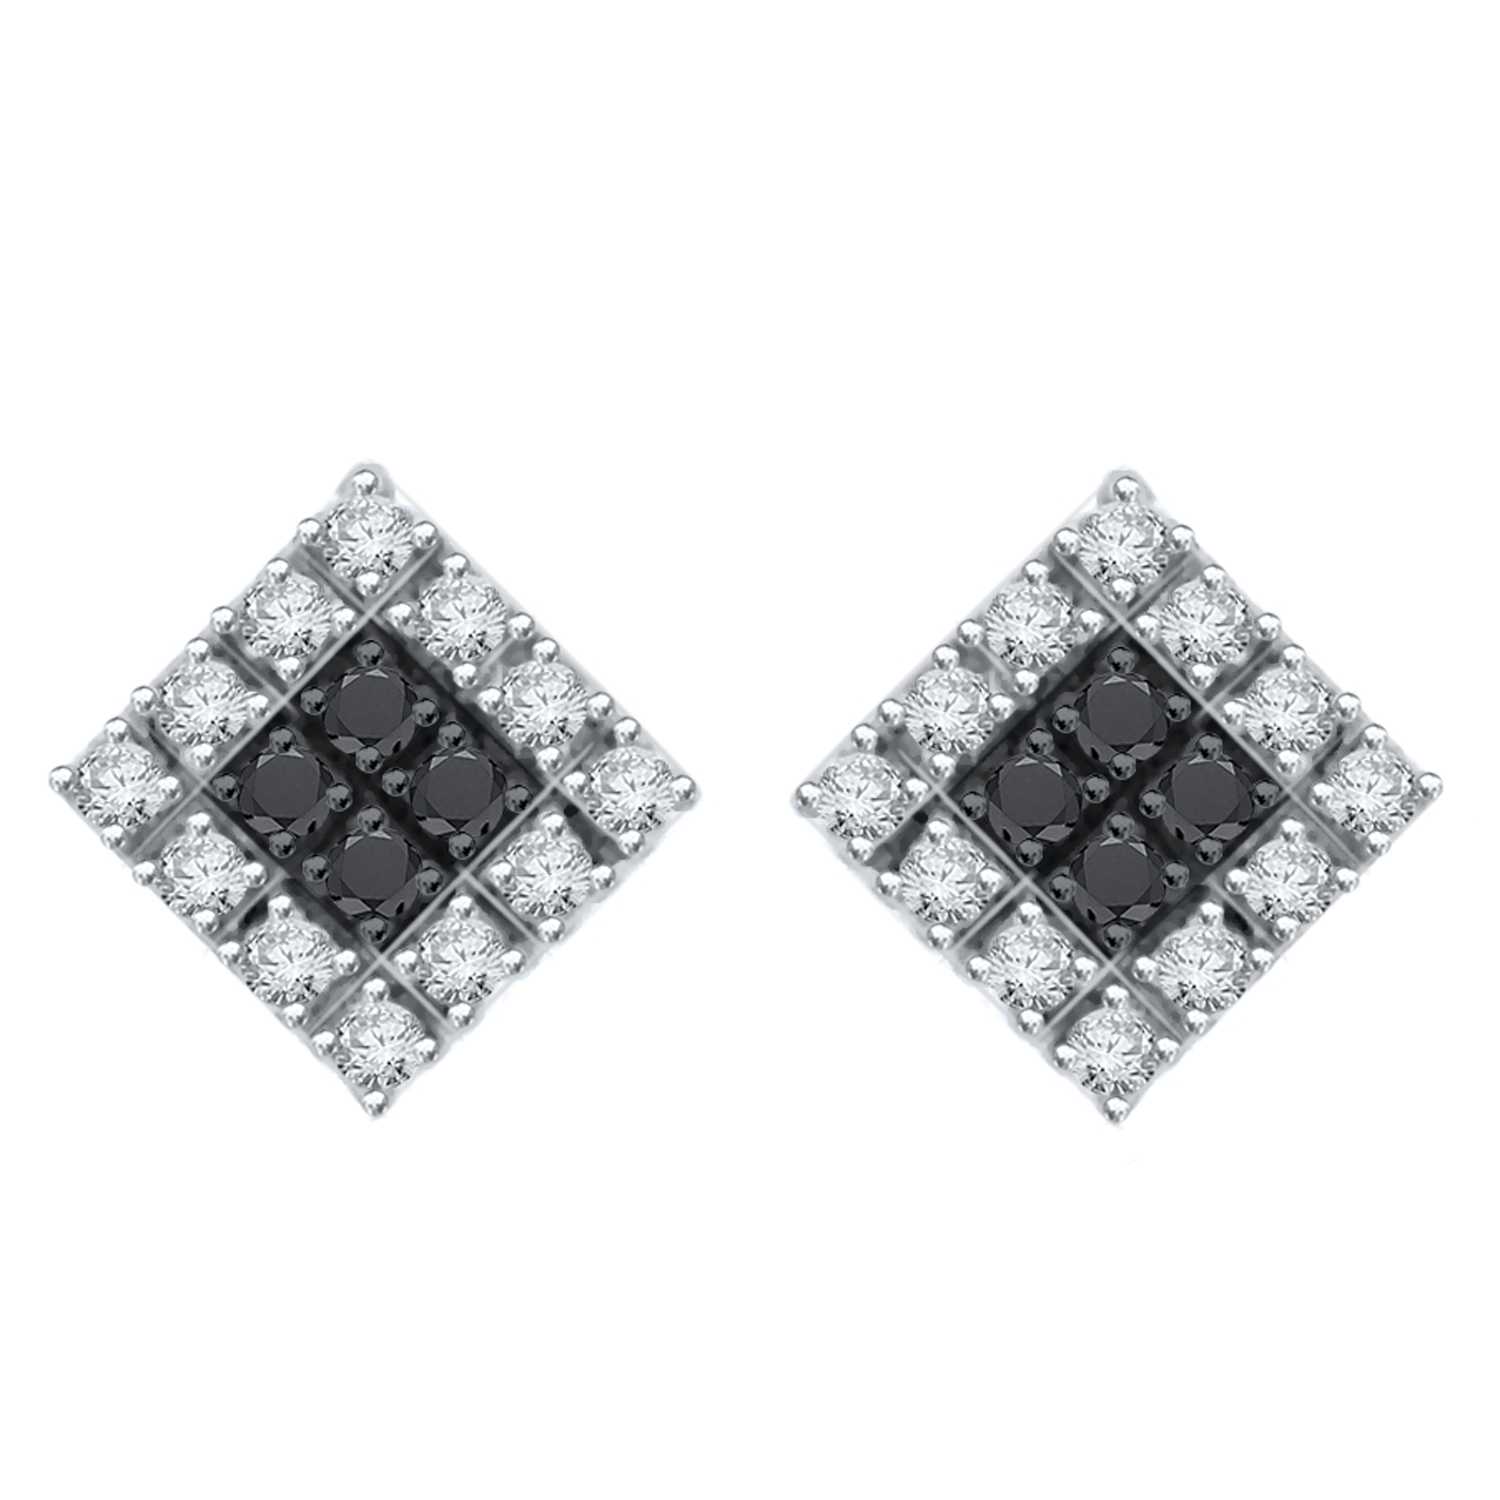 Certified 0.50 cttw Black & White Round Cut Diamond Earrings in 10k White Gold